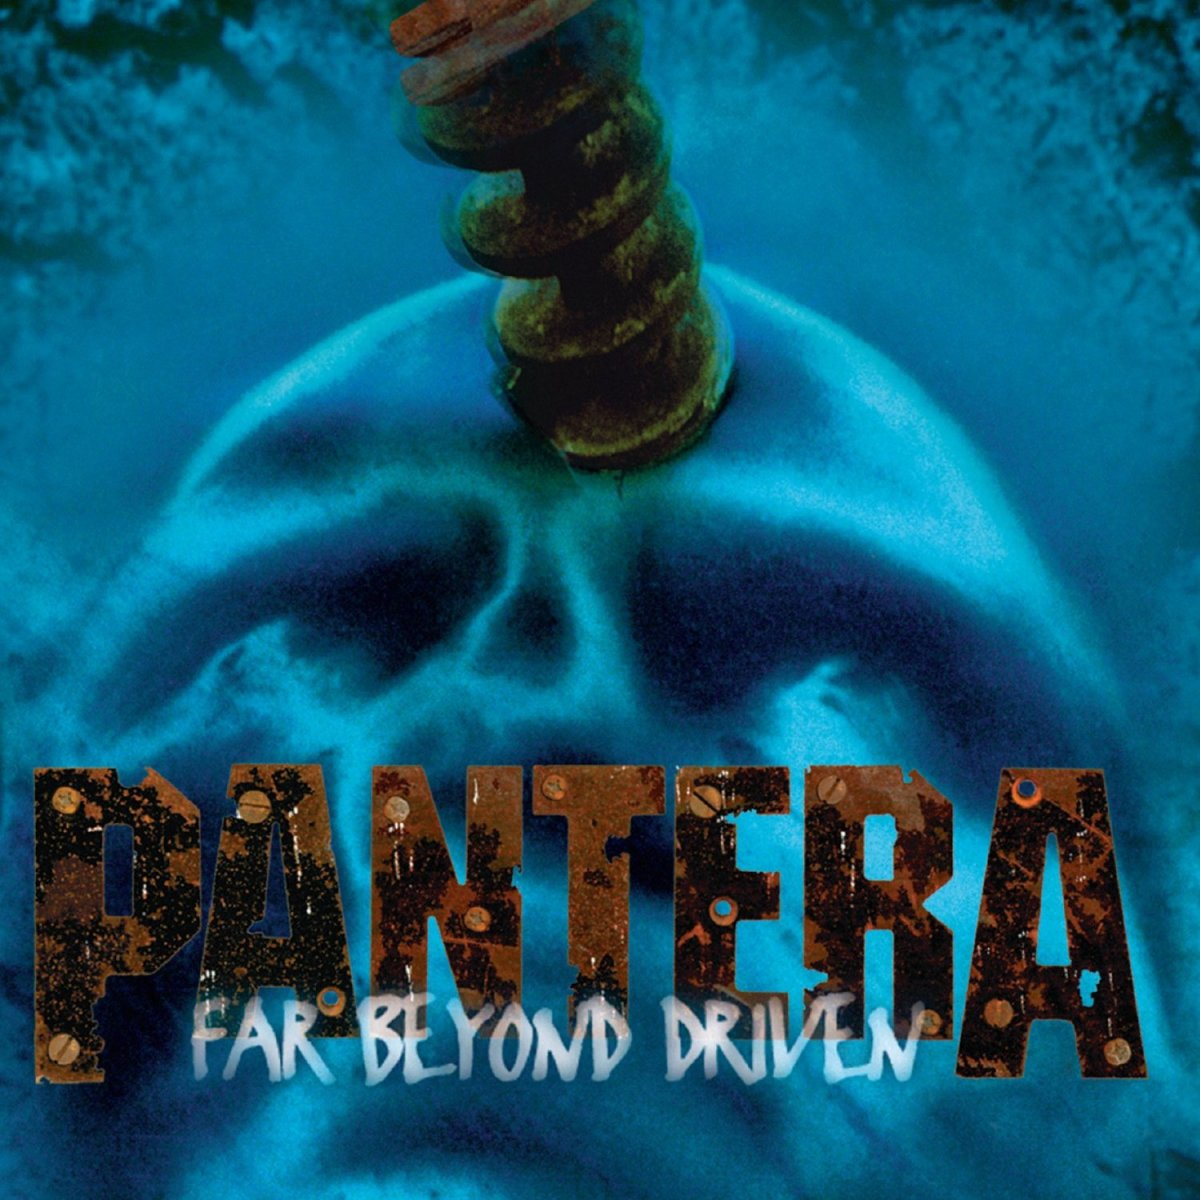 The album cover for Far Beyond Driven can represent a decline in the band's career as this image shows. Pantera were never the same band after their 1992 album Vulgar Display of Power.